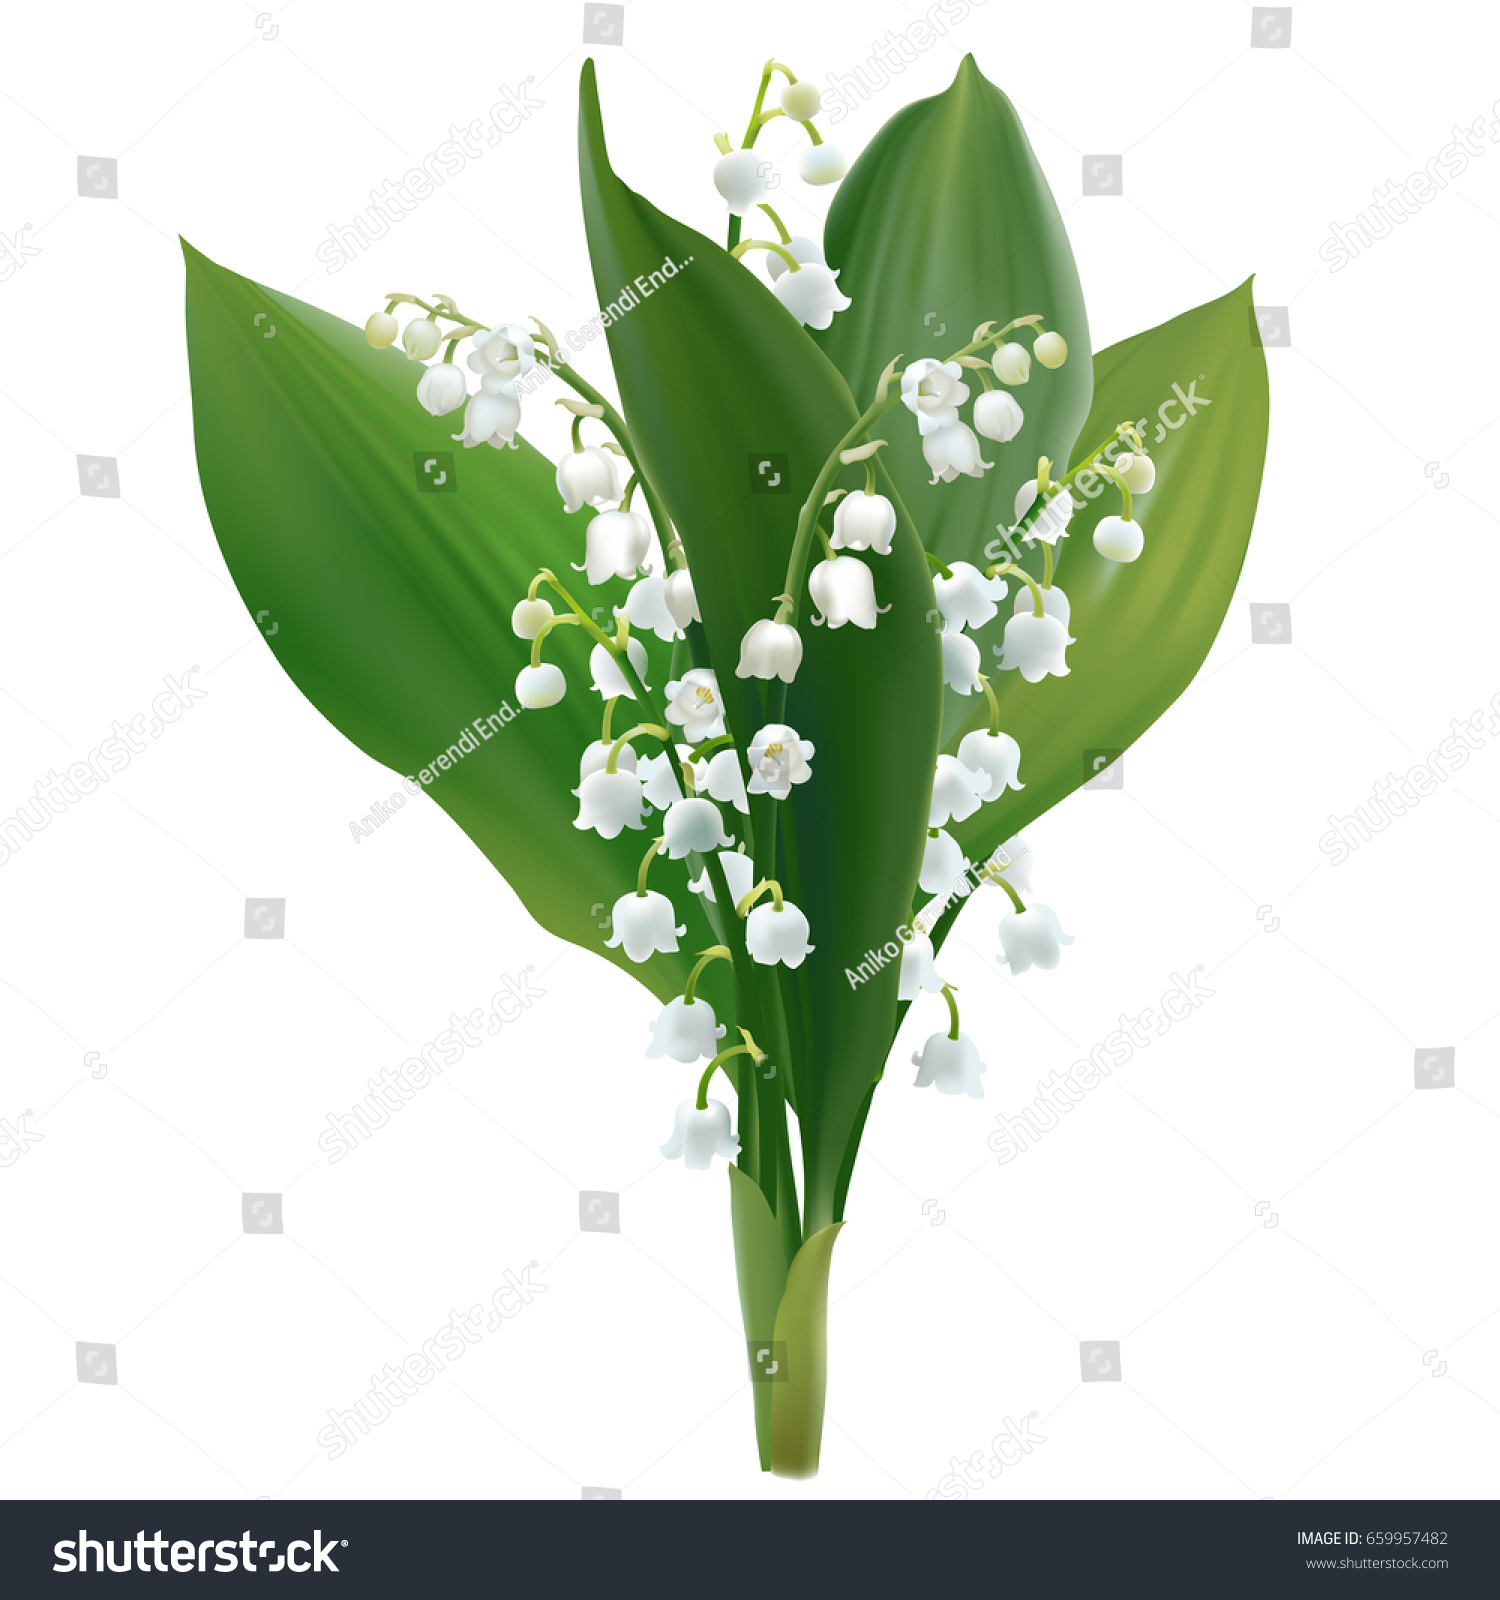 Convallaria majalis lilly valley hand drawn stock photo photo convallaria majalis lilly of the valley hand drawn vector illustration of a bouquet of izmirmasajfo